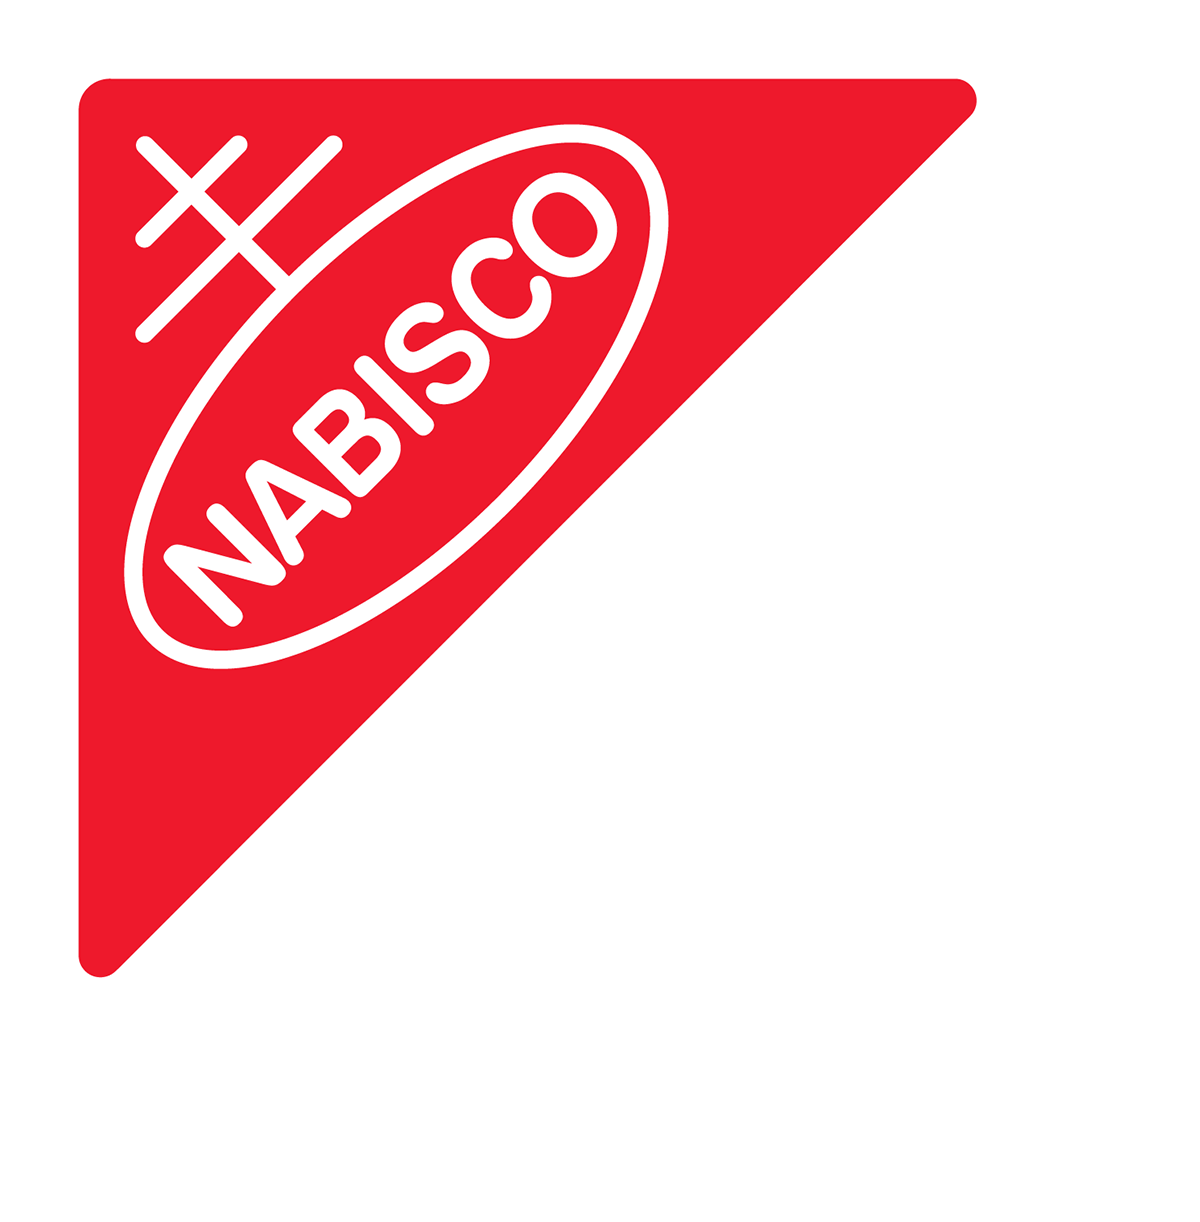 https://bbigcommunications.com/wp-content/uploads/2021/01/Nabisco.png